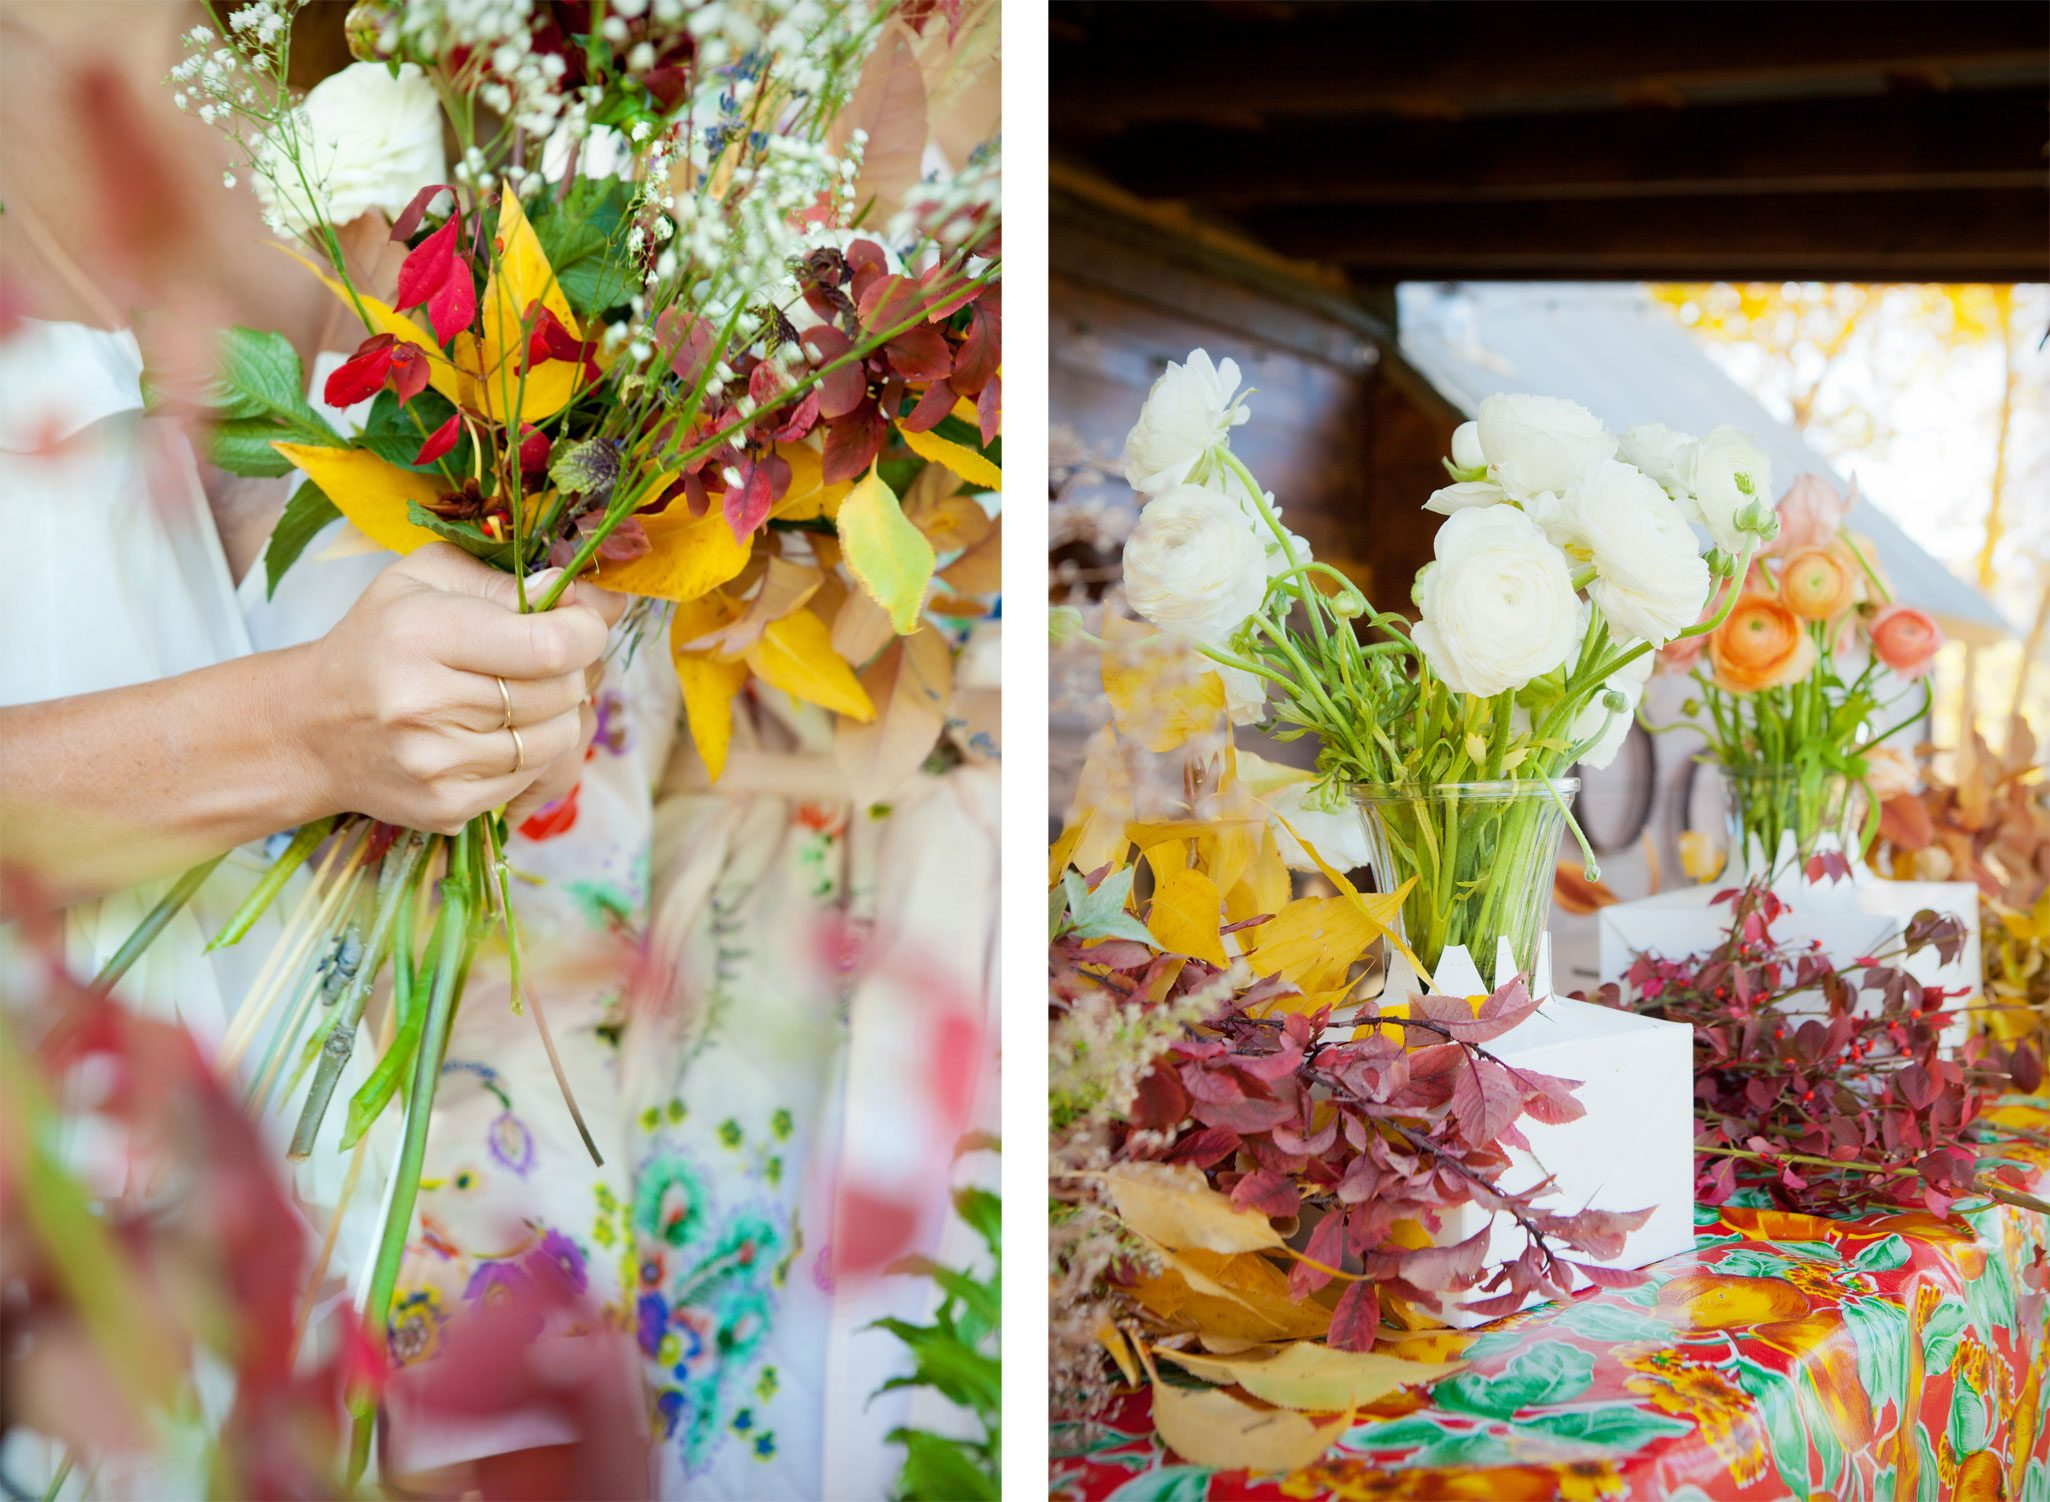 Florals - An Outdoor Autumn Wedding in Mancos, Colorado